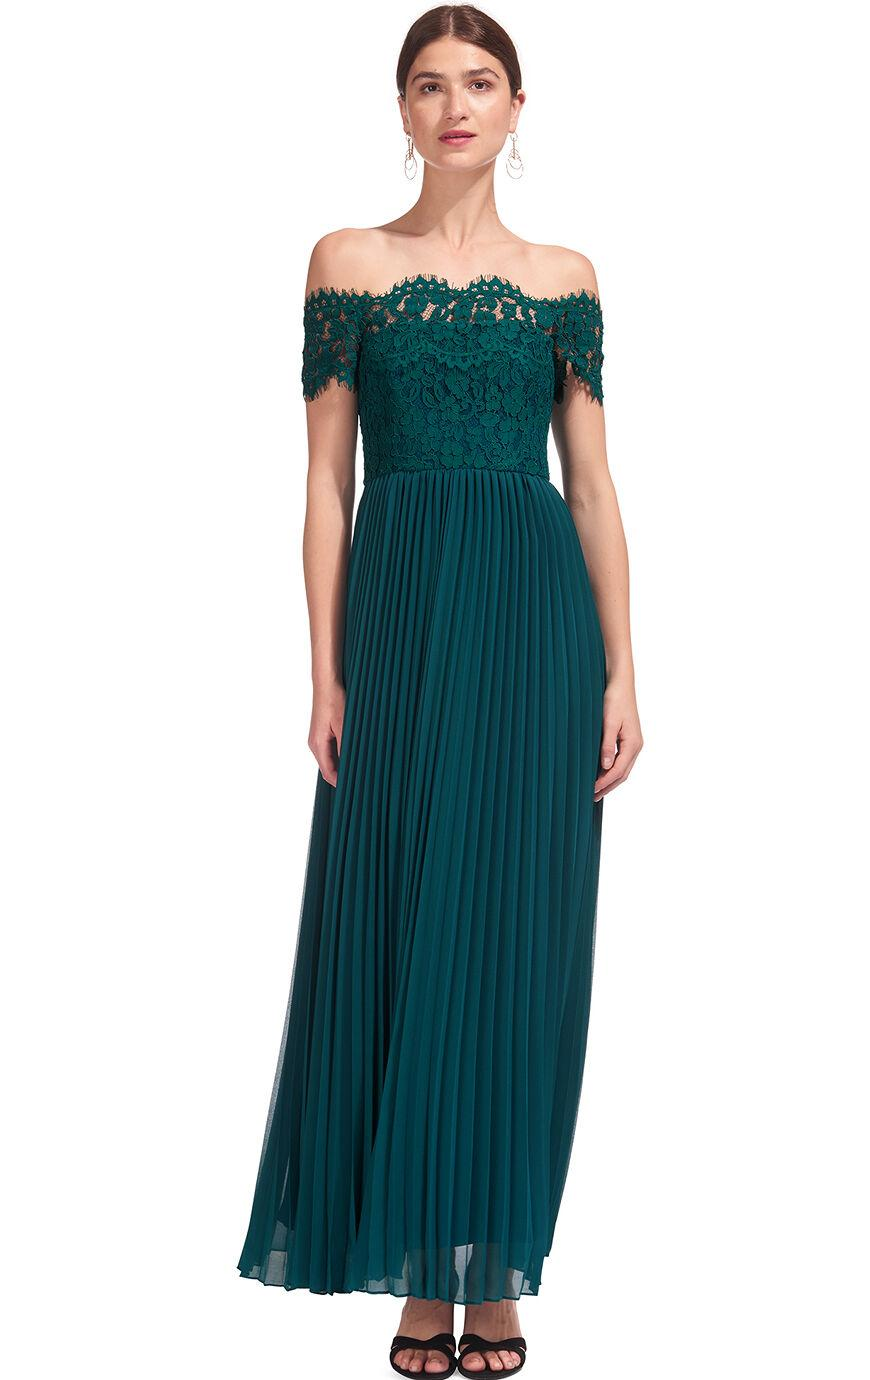 Whistles Bardot Lace Pleat Maxi Dress in Green